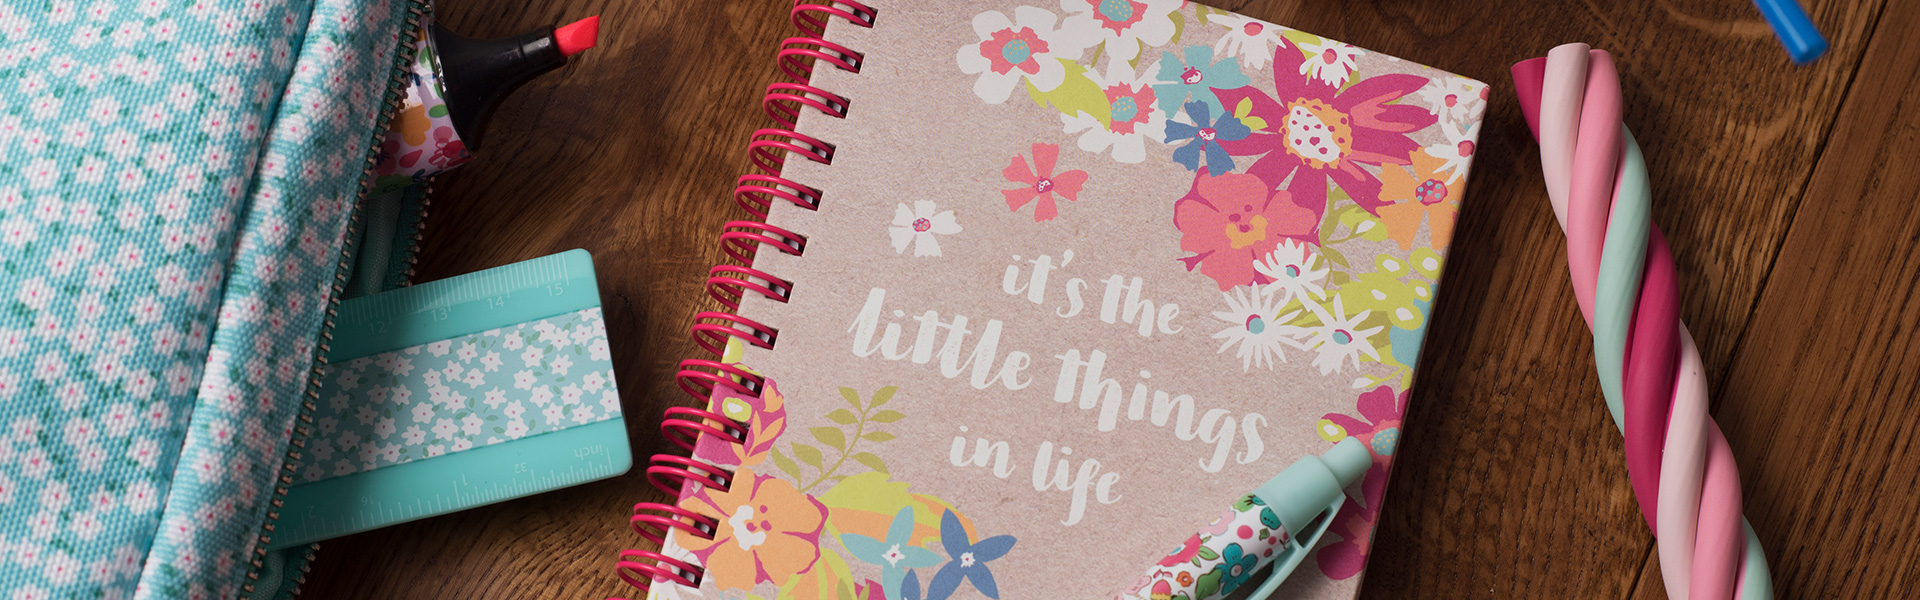 summer stationery goals fun fresh and floral whsmith blog